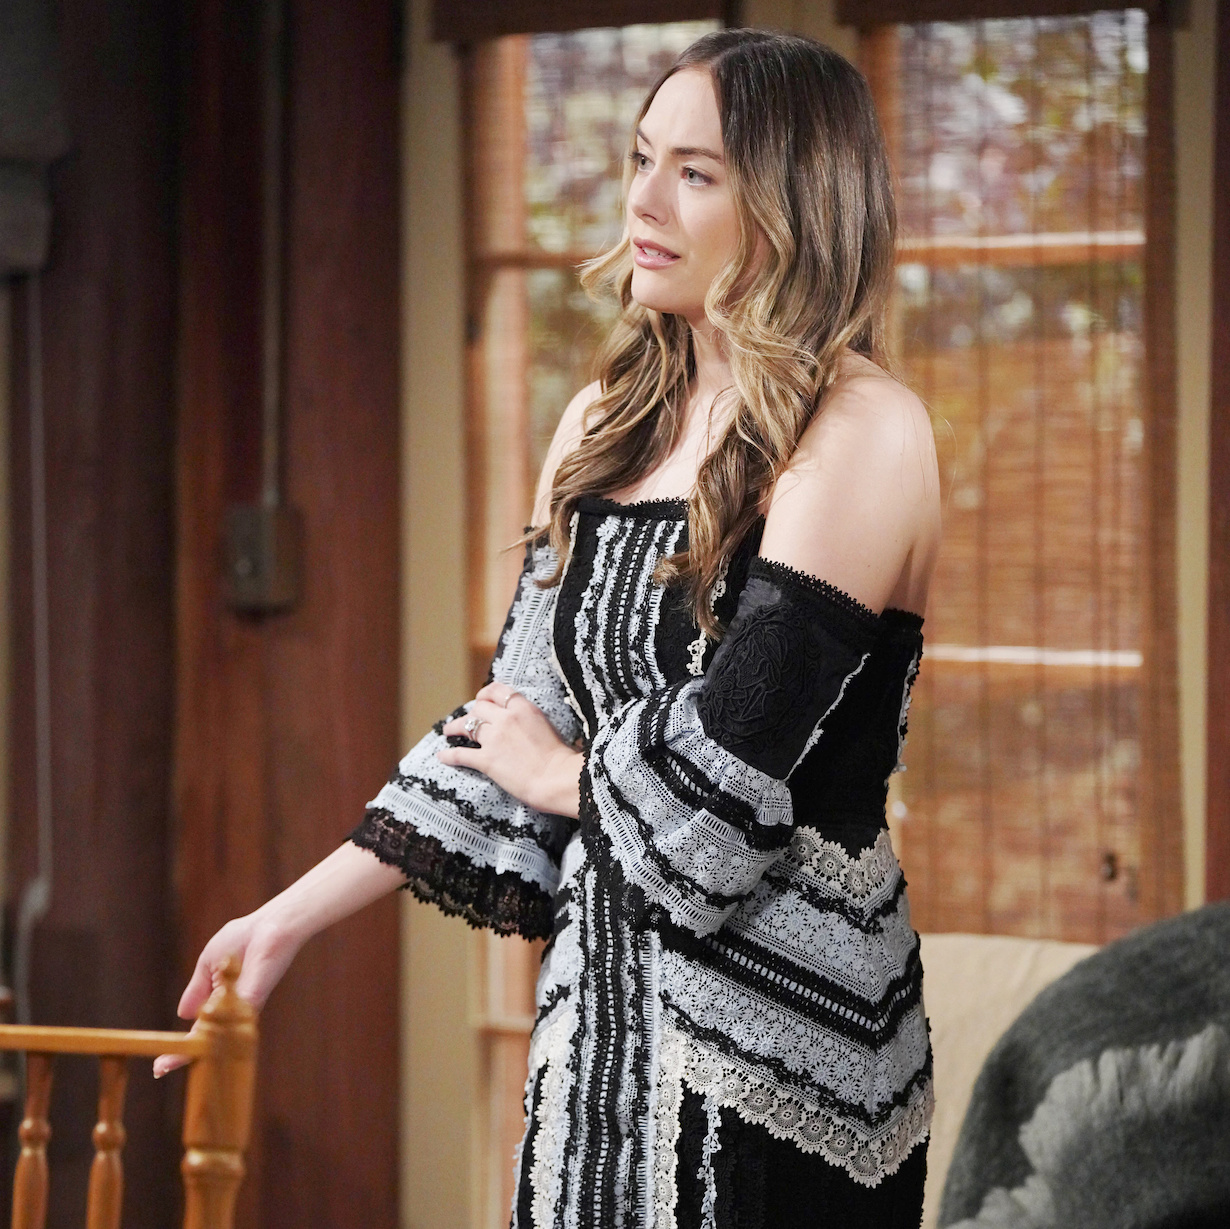 """Annika Noelle """"The Bold and the Beautiful"""" Set CBS Television City Los Angeles, Ca. 03/25/21 © Howard Wise/jpistudios.com 310-657-9661 Episode # 8524 U.S.Airdate 05/26/21"""